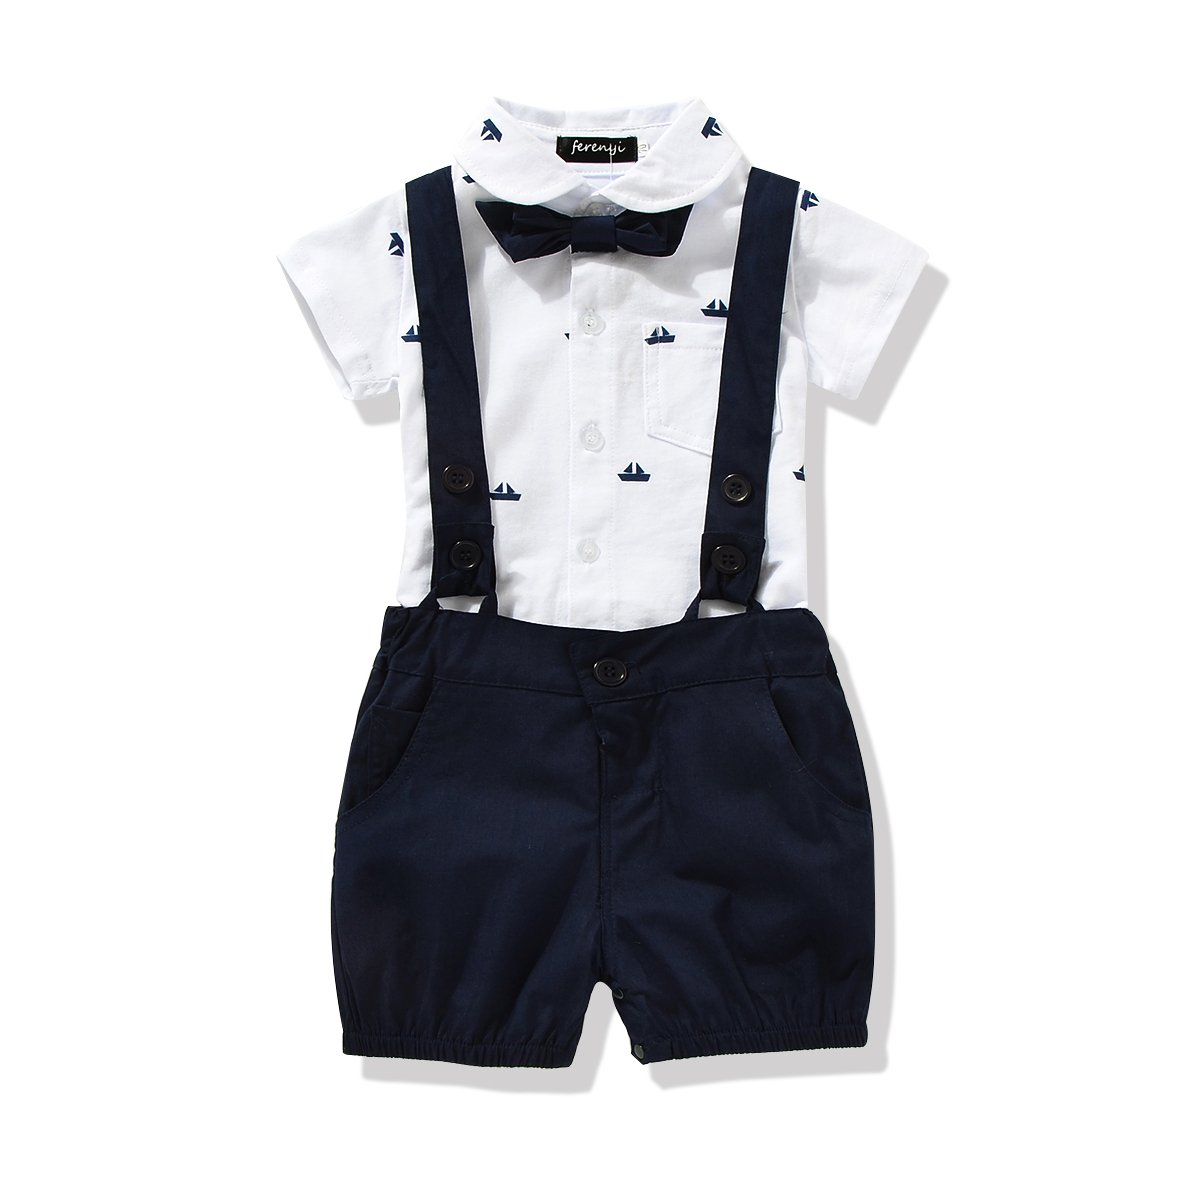 FERENYI US Baby Boys Bowtie Gentleman Romper Jumpsuit Overalls Rompers (7-12 Months, Navy Blue) by FERENYI